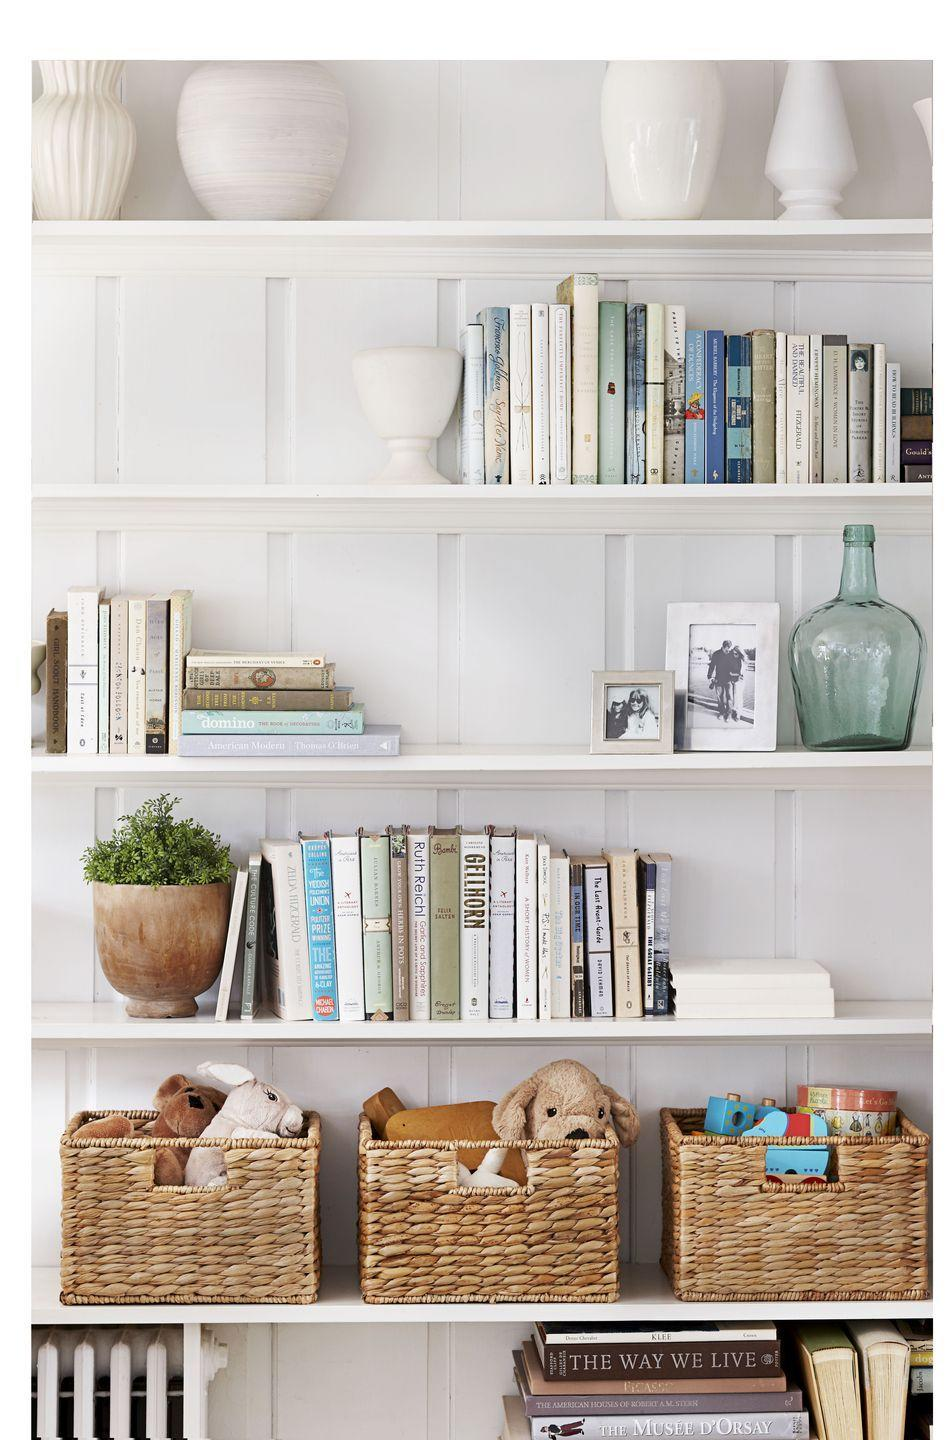 <p>Design pros know not to let books take over shelves without weaving in a few stylish decor accents. Think ceramics, glass vases, framed photos, and woven baskets to corral toys. </p>